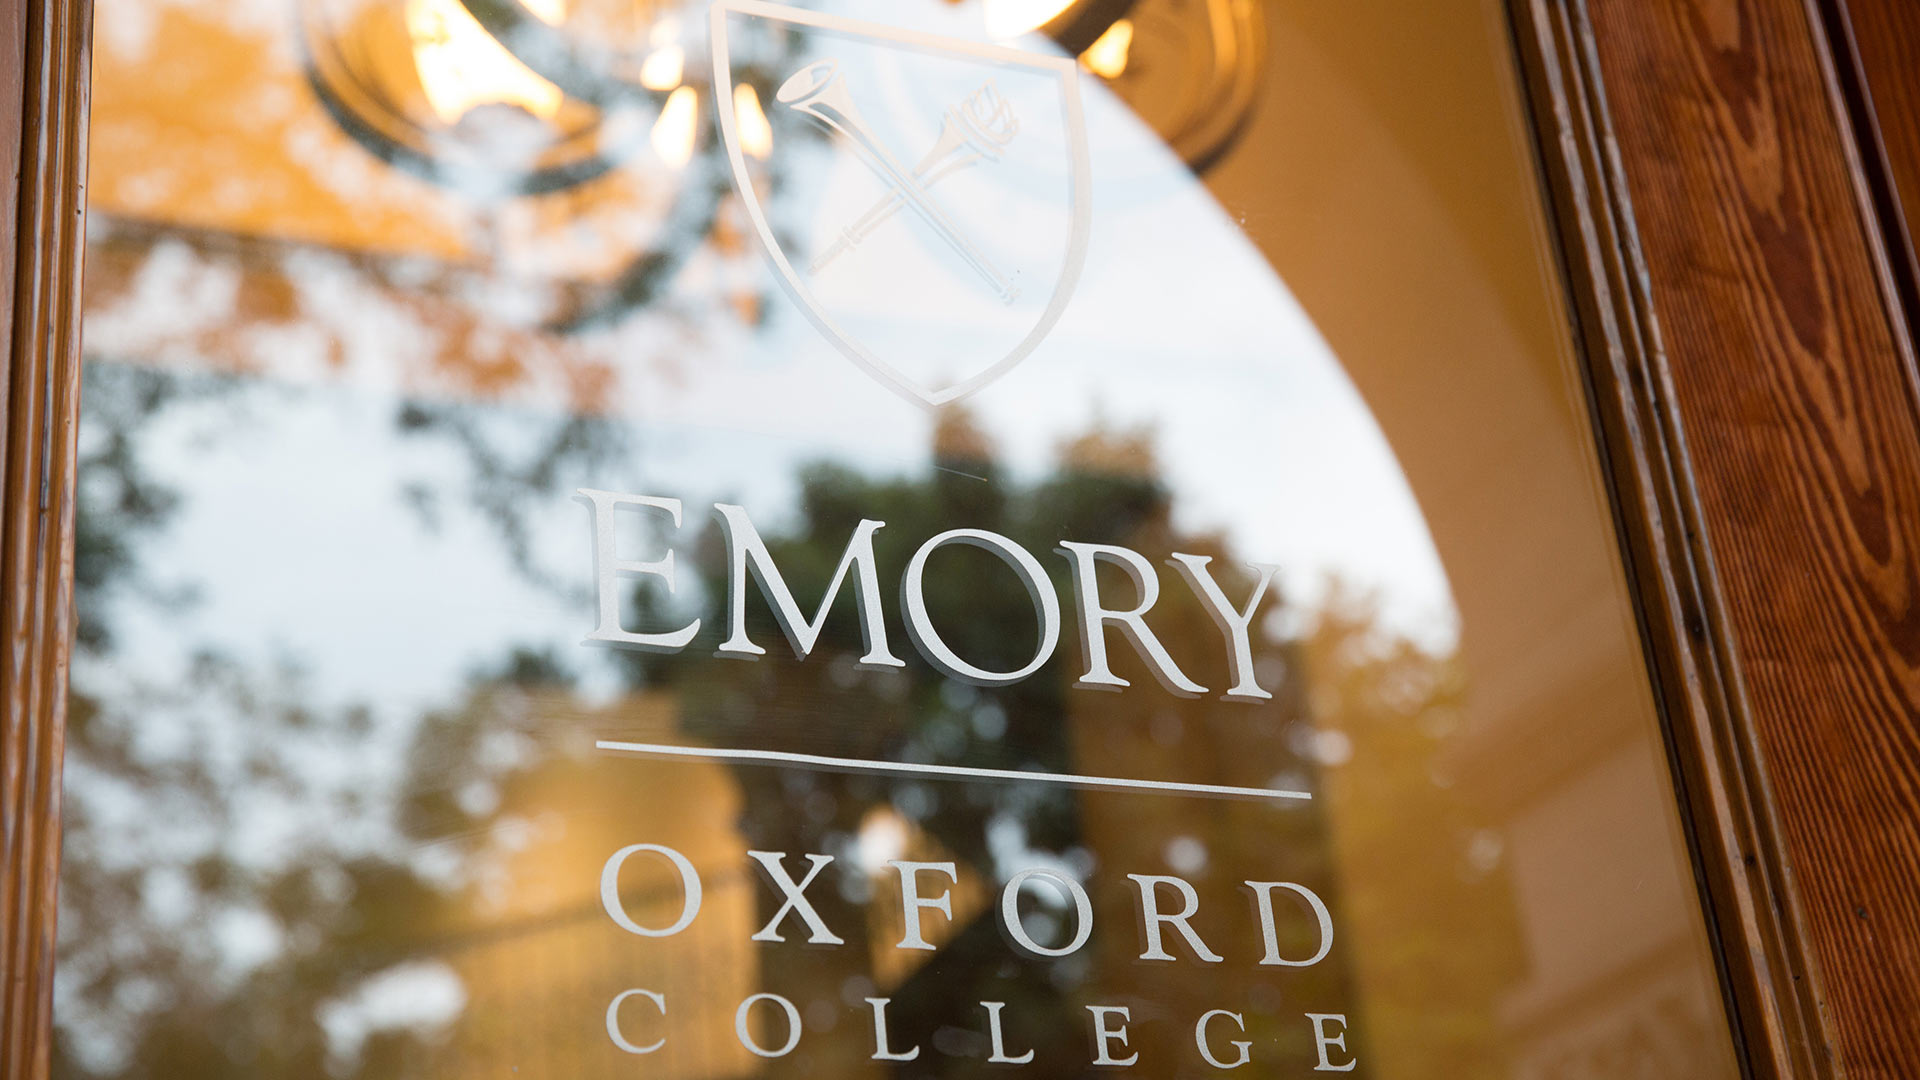 Emory established a fund designed to support our students facing financial hardships as a result of COVID-19